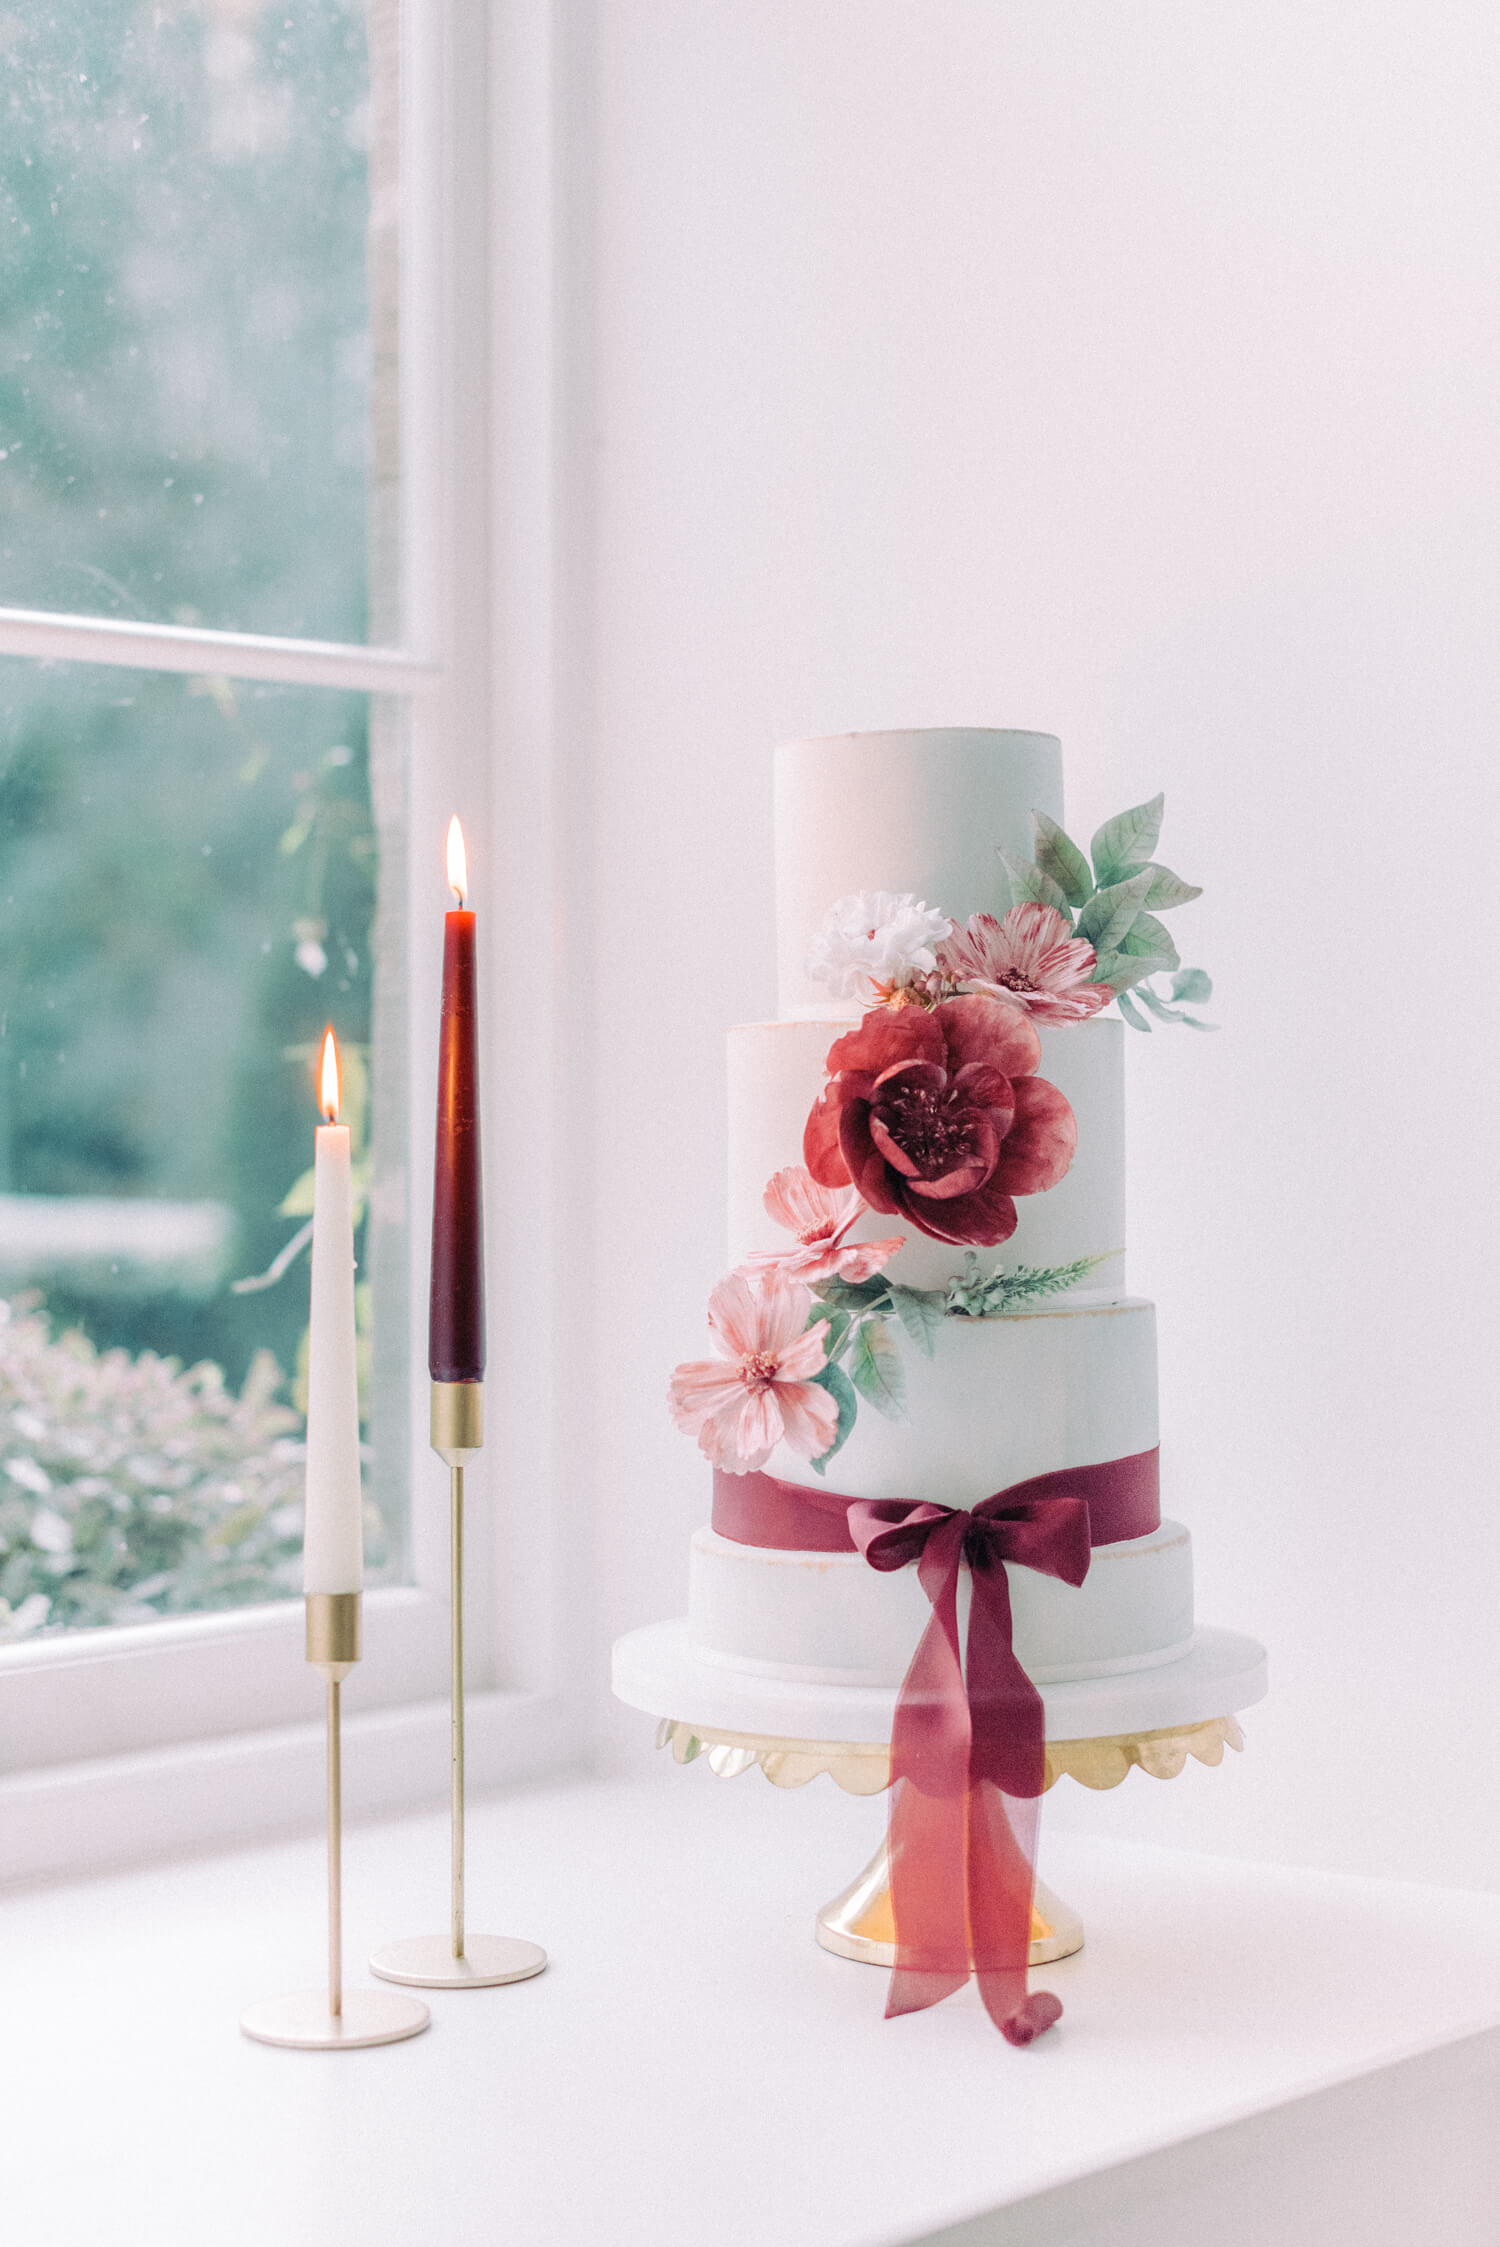 elegant christmas wedding - 3 tier fondant with burgundy and old rose flowers and hand dyed silk ribbons on a brass stand. on the left are two tapered candles on brass candlestick holders. designed  by sadie may cakes. photo by cristina ilao photography